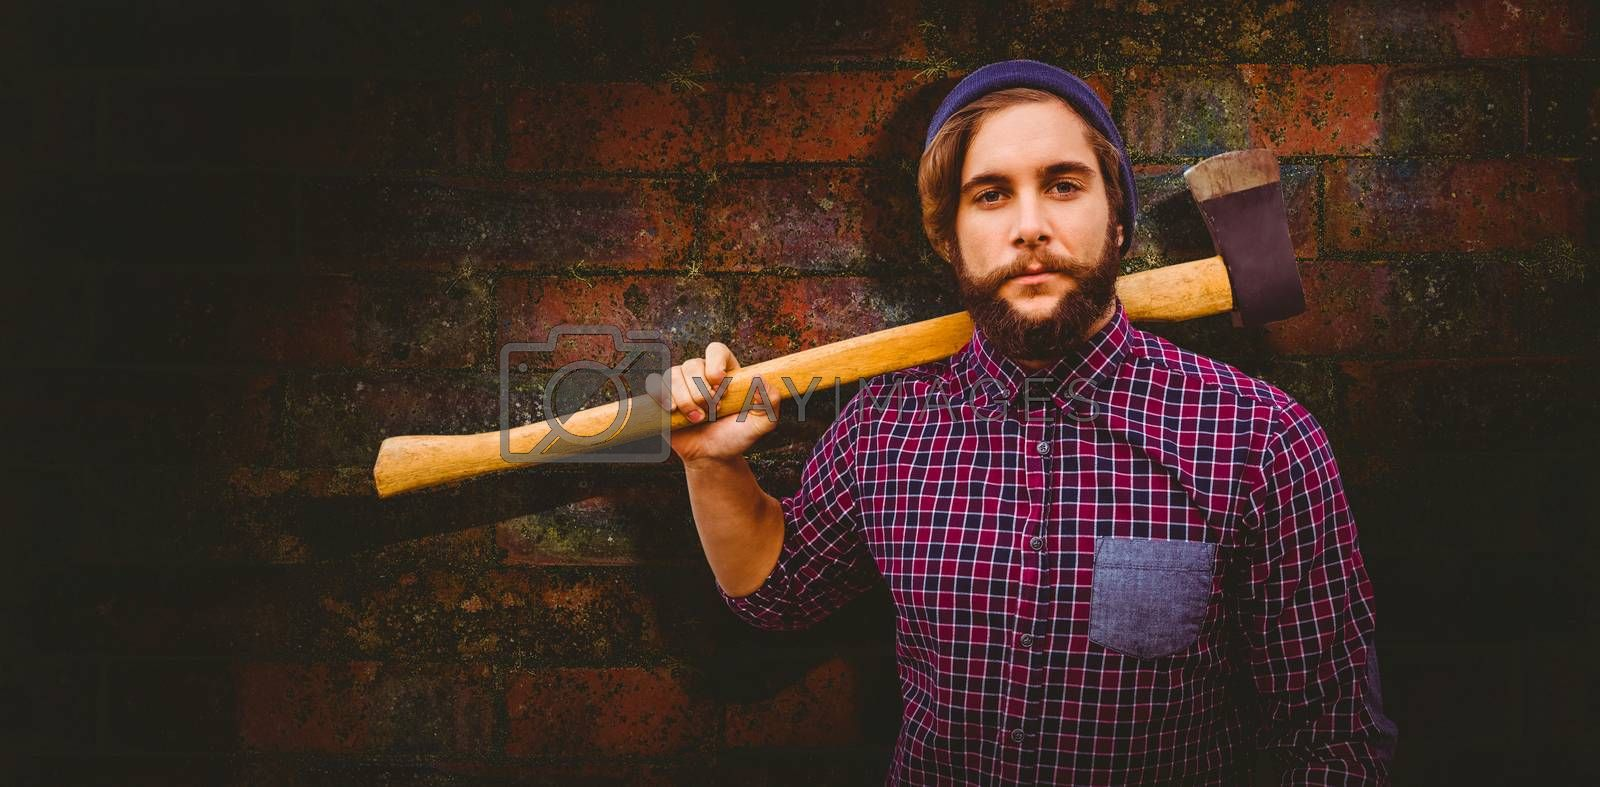 Hipster holding axe on shoulder against texture of bricks wall